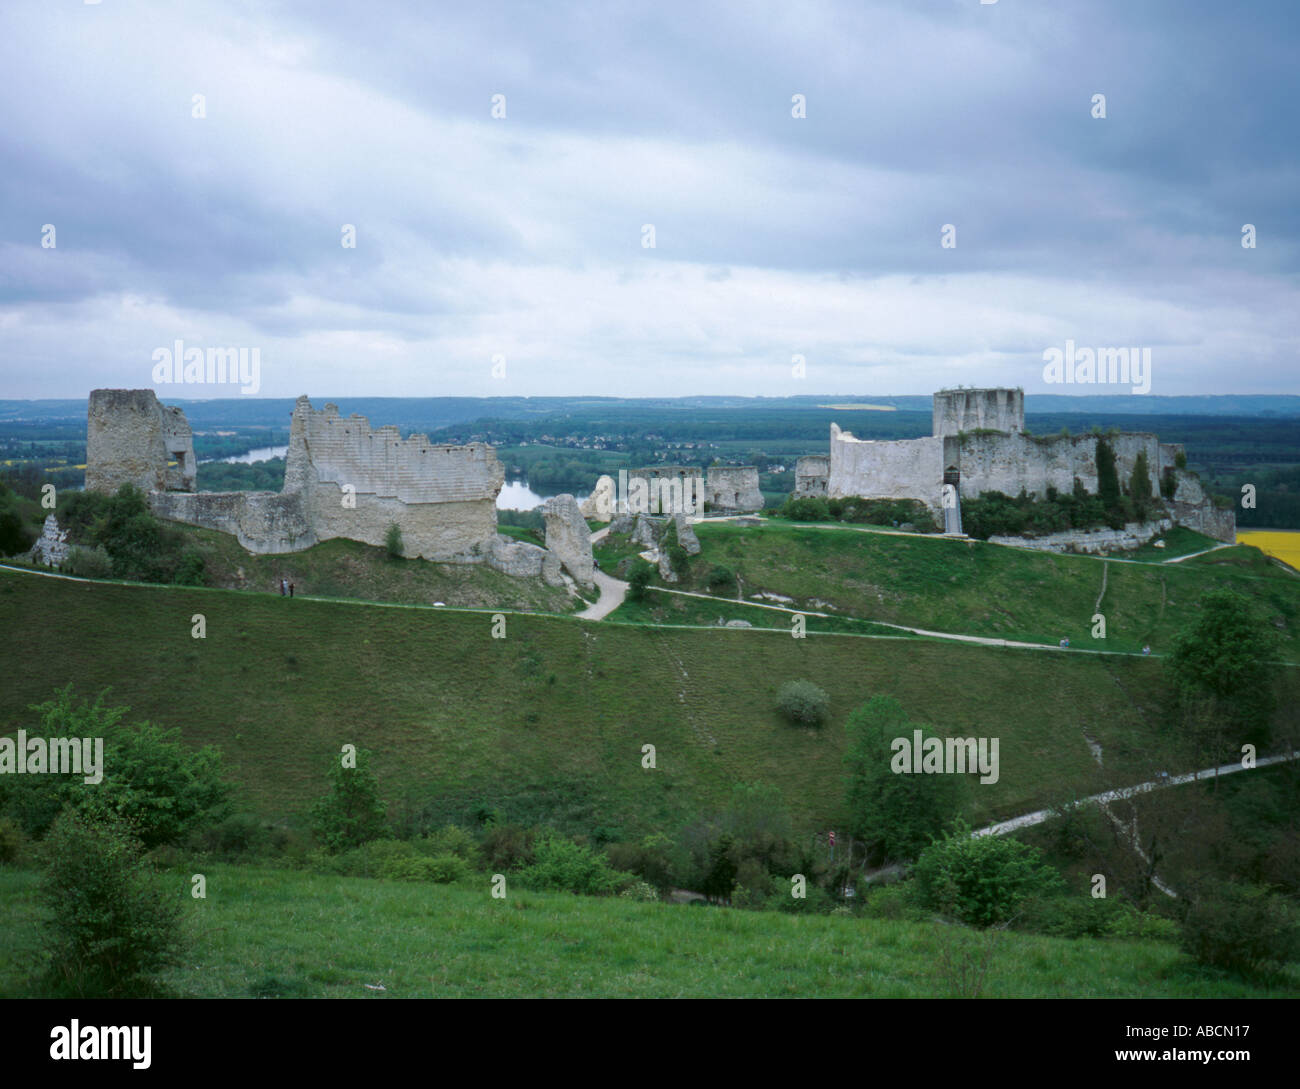 Ruins Of Chateau Gaillard With River Seine Beyond Les Andelys Stock Photo Alamy